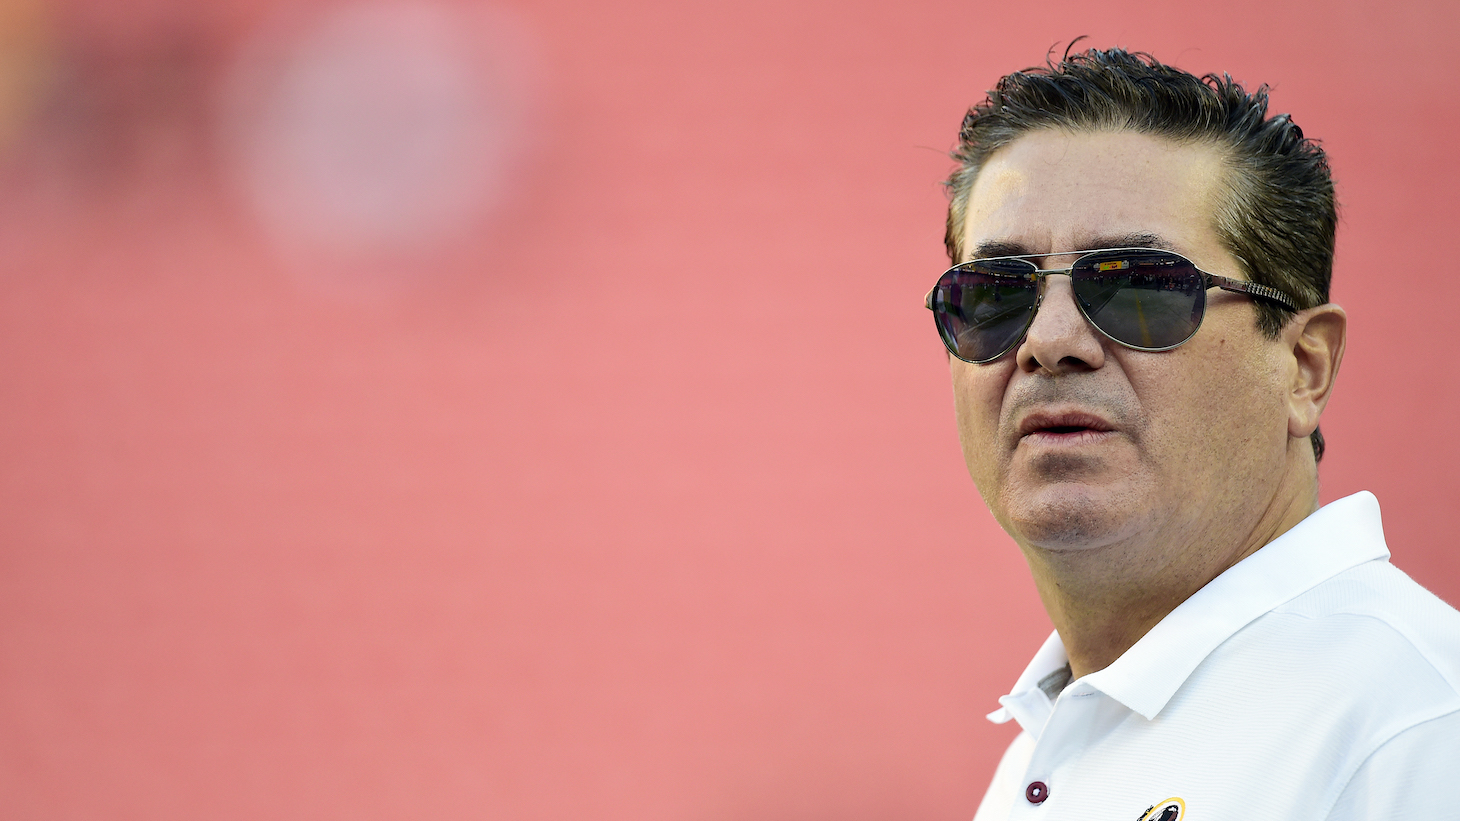 LANDOVER, MD - AUGUST 29: Washington Redskins owner Dan Snyder stands on the field before a preseason game between the Baltimore Ravens and Redskins at FedExField on August 29, 2019 in Landover, Maryland. (Photo by Patrick McDermott/Getty Images)